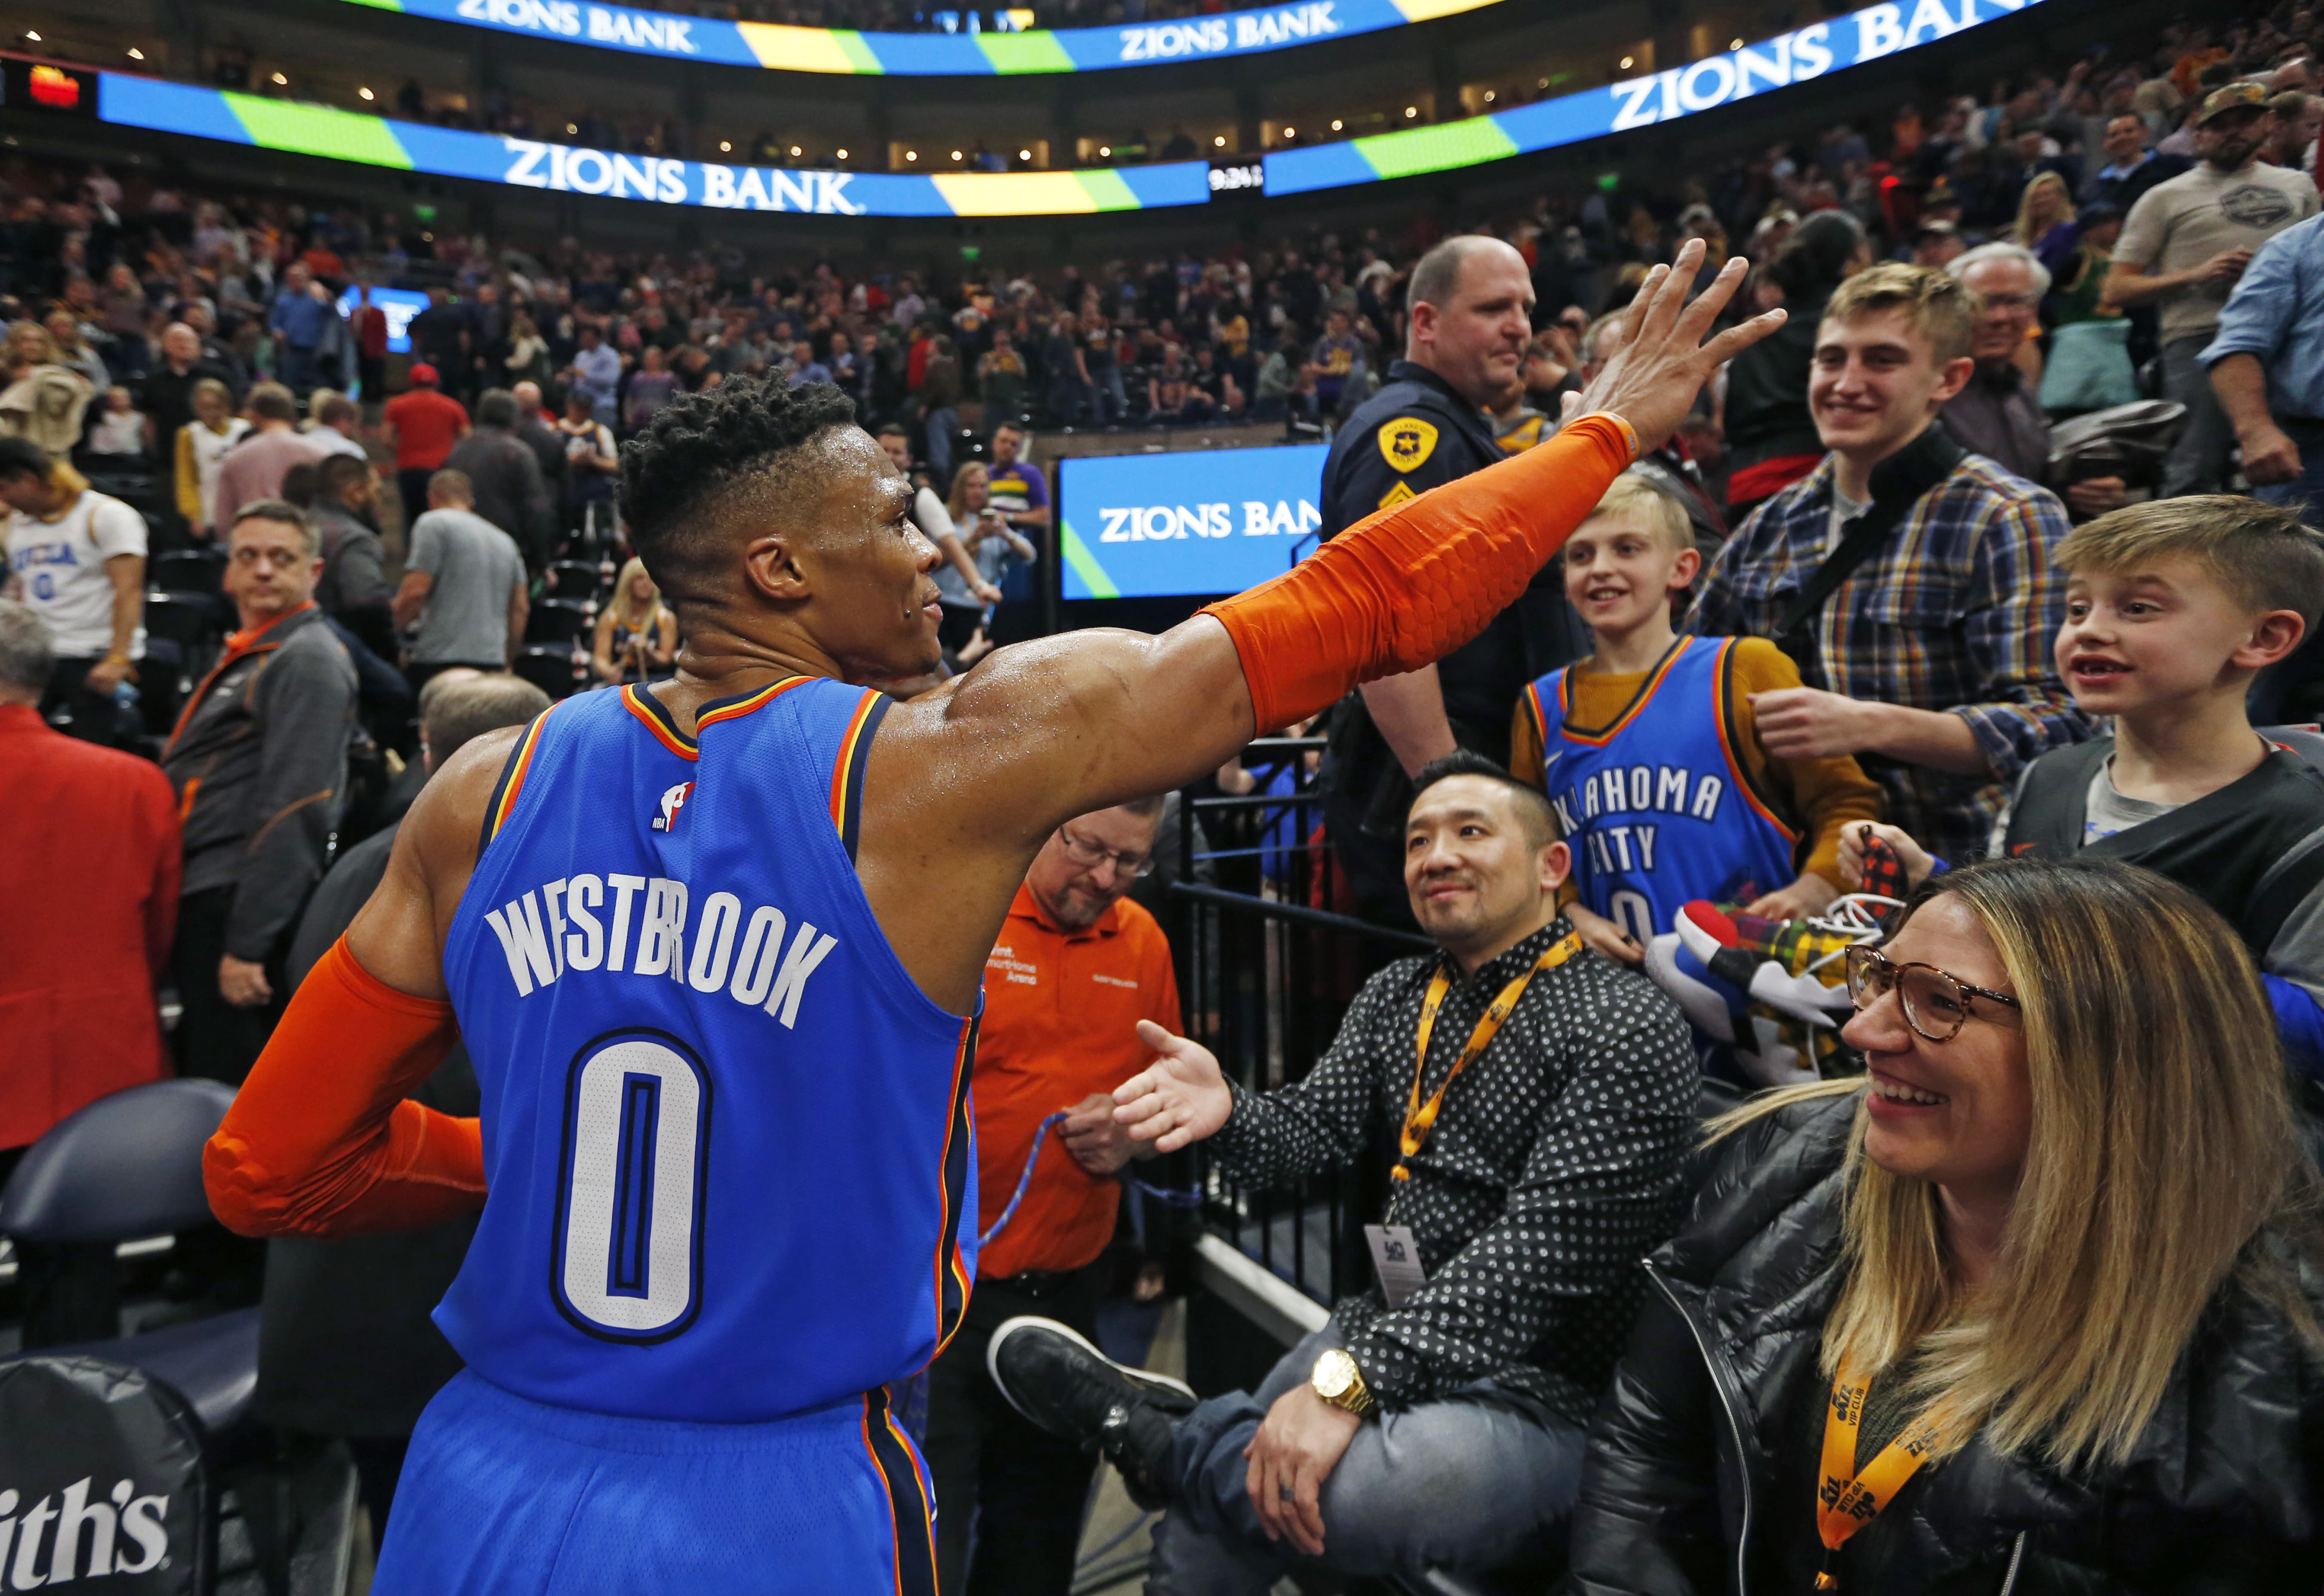 c78d1725f913 Russell Westbrook incident shows we could be on path to another  Malice at  the Palace